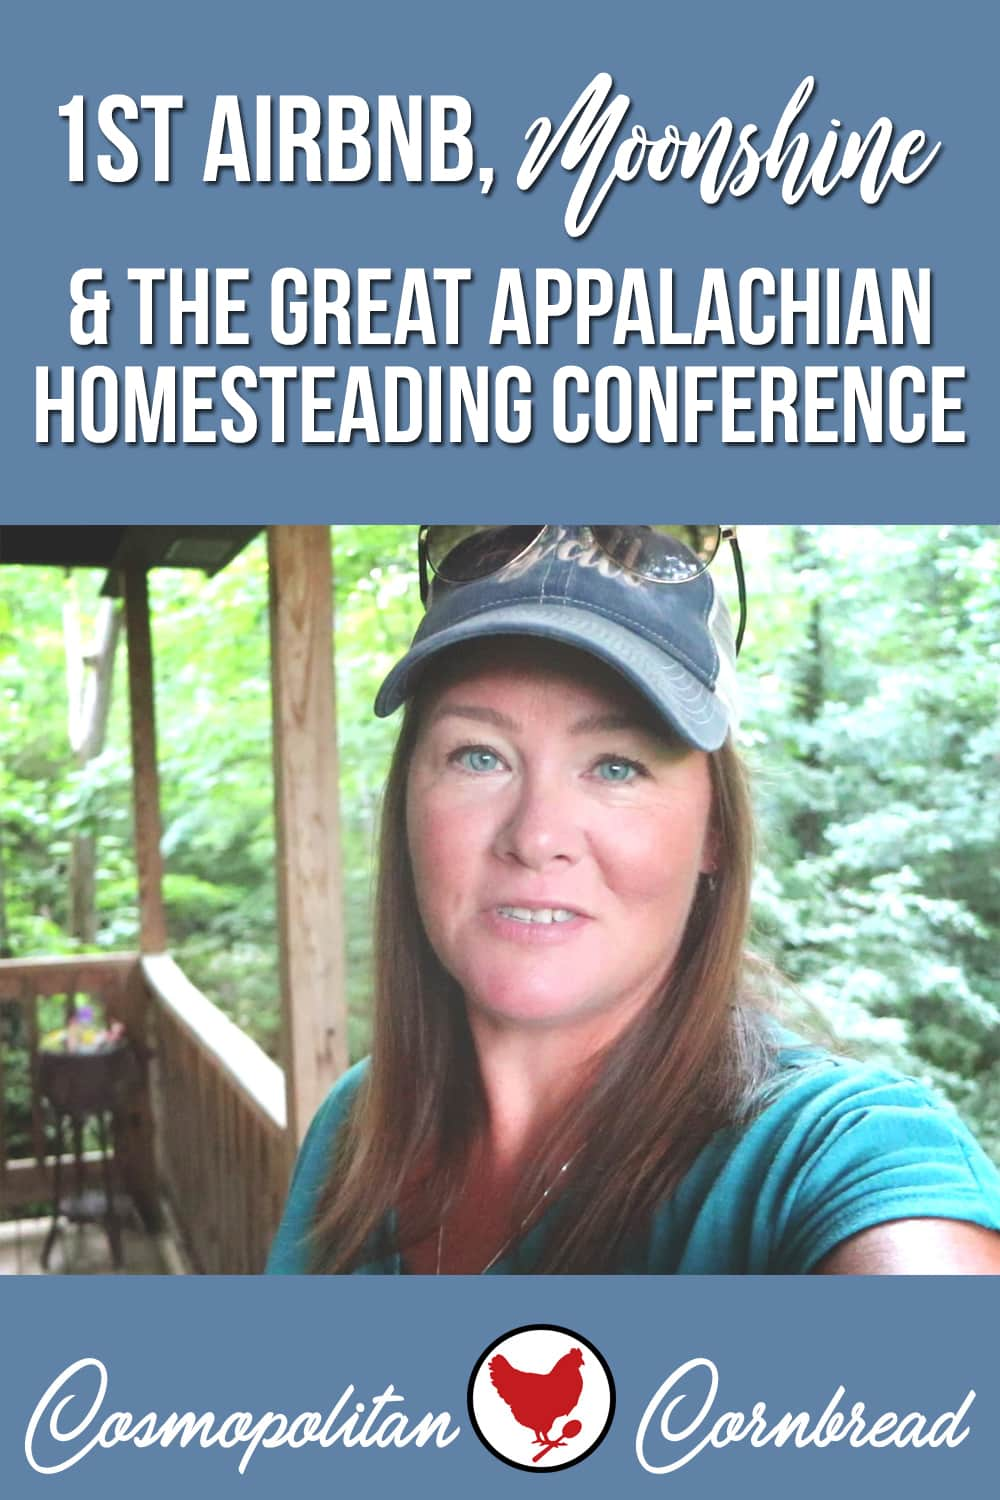 This weekend I went to Cookeville, Tennessee. I got a little adventurous and did my very first AirBnB stay, explored the town a little, tried moonshine, and attended the Great Appalachian Homesteading Conference! It was a FULL weekend.